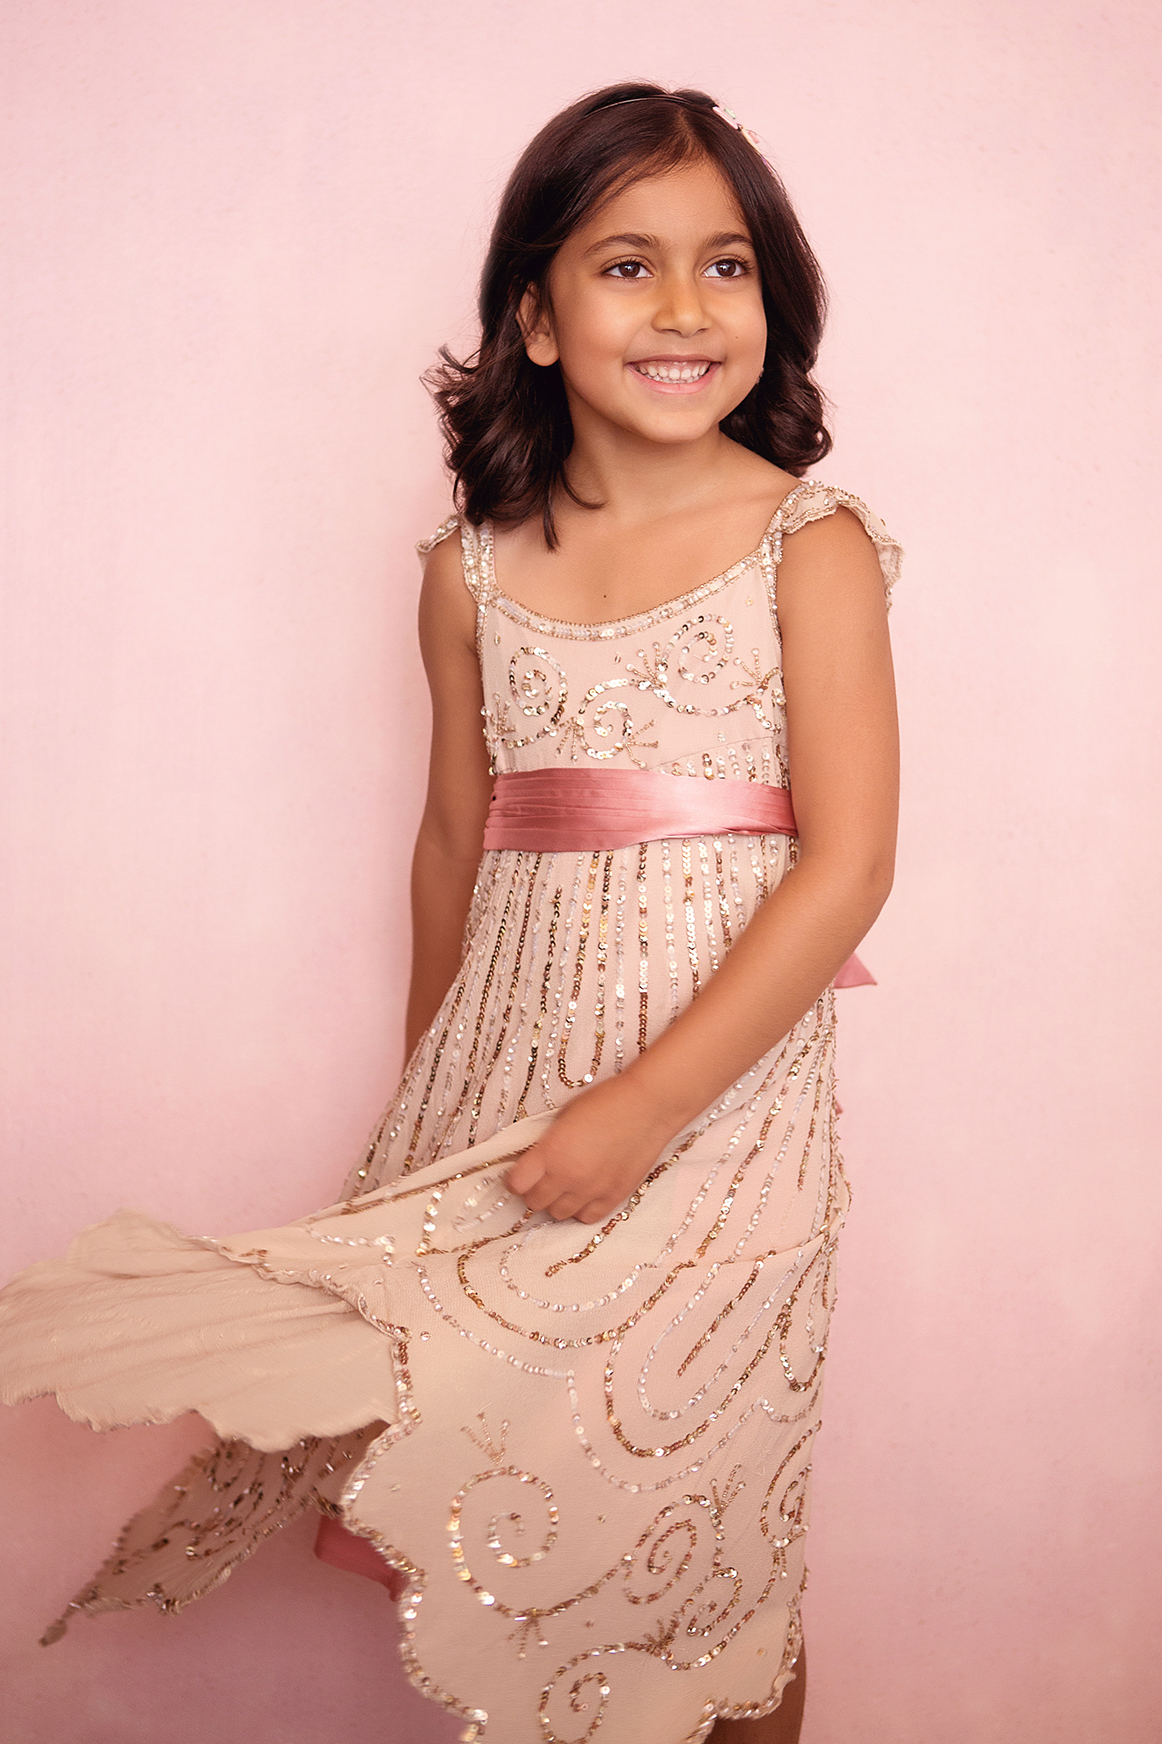 children_photographer_windsor_photography_studio.jpg.jpg